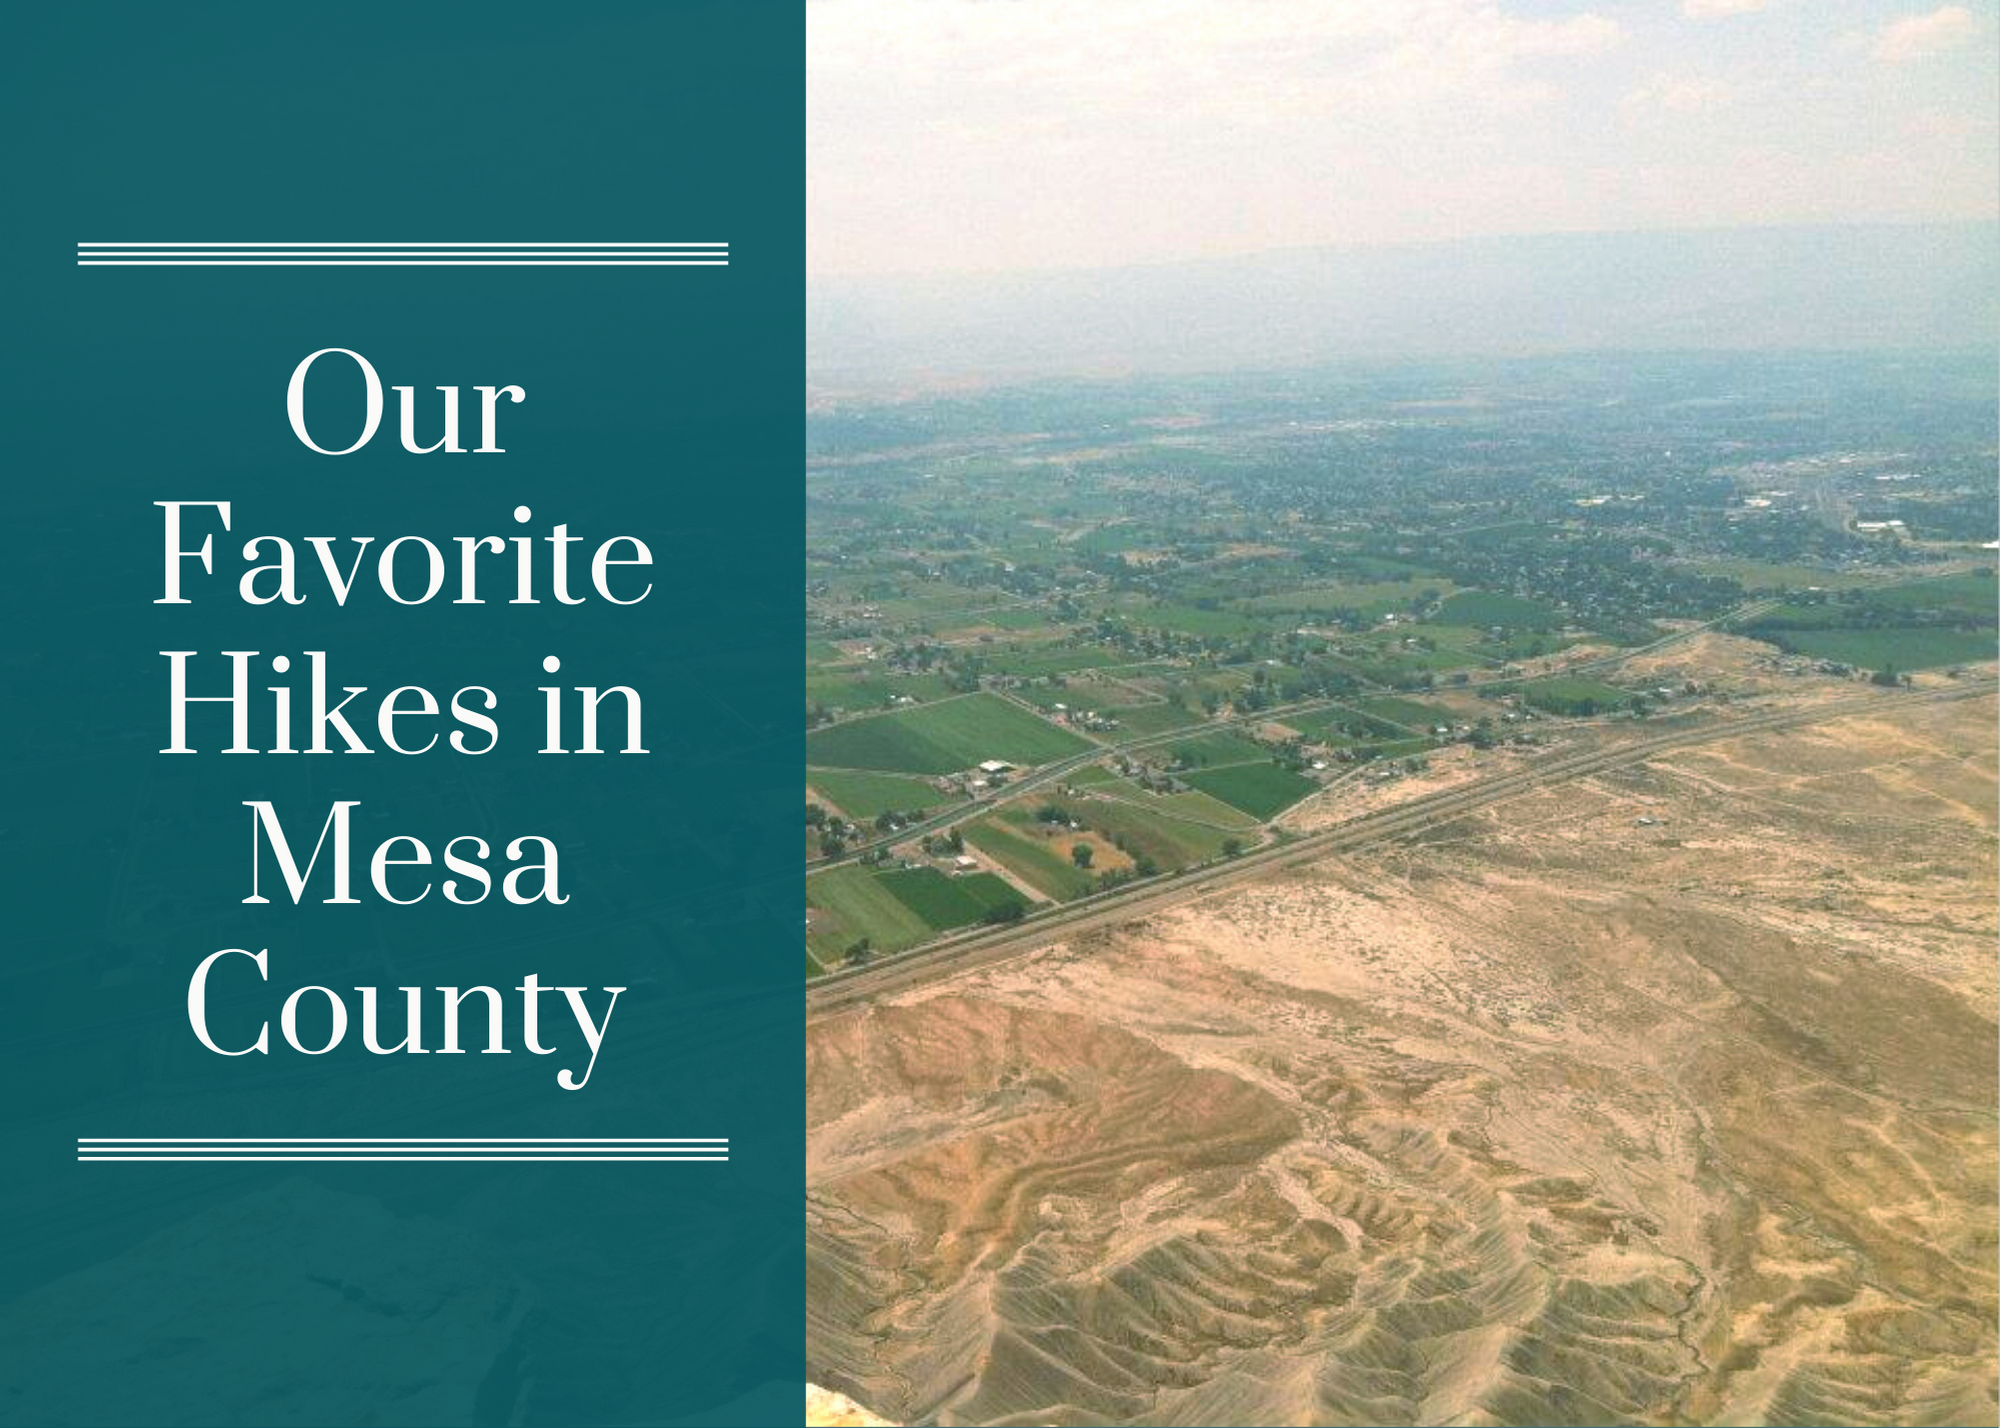 Our Favorite Hikes in Mesa County